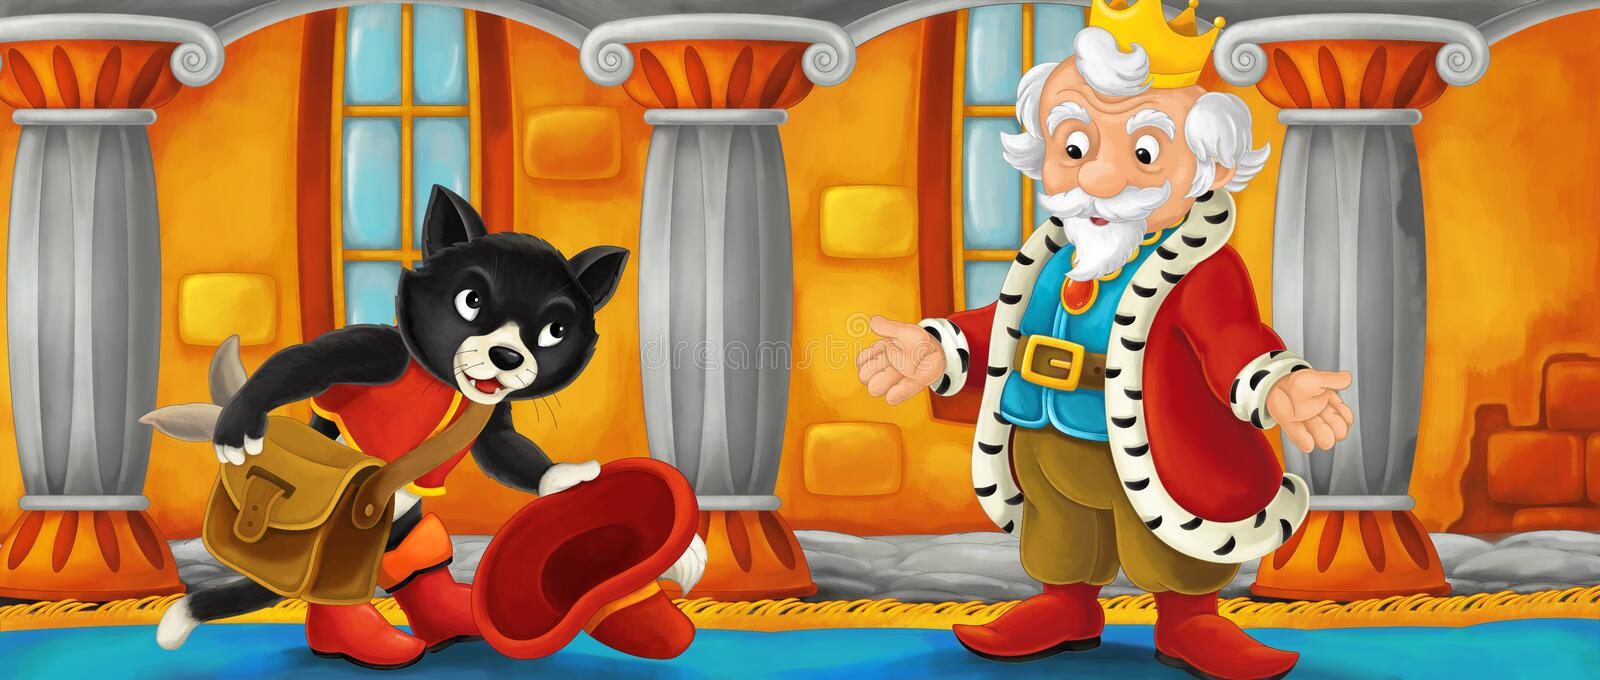 Cartoon cat visiting king in his castle royalty free illustration